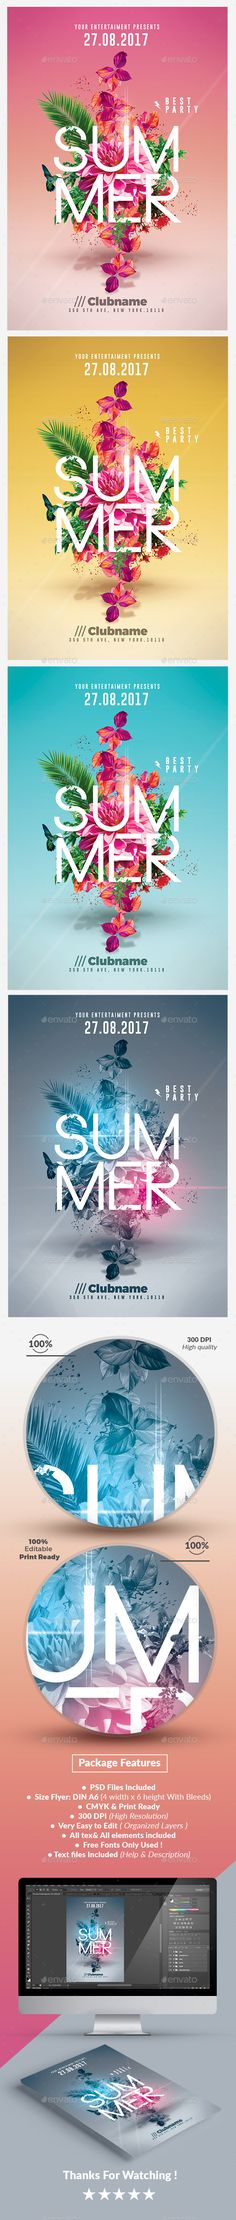 Summer Party |  Psd Flyer Templates